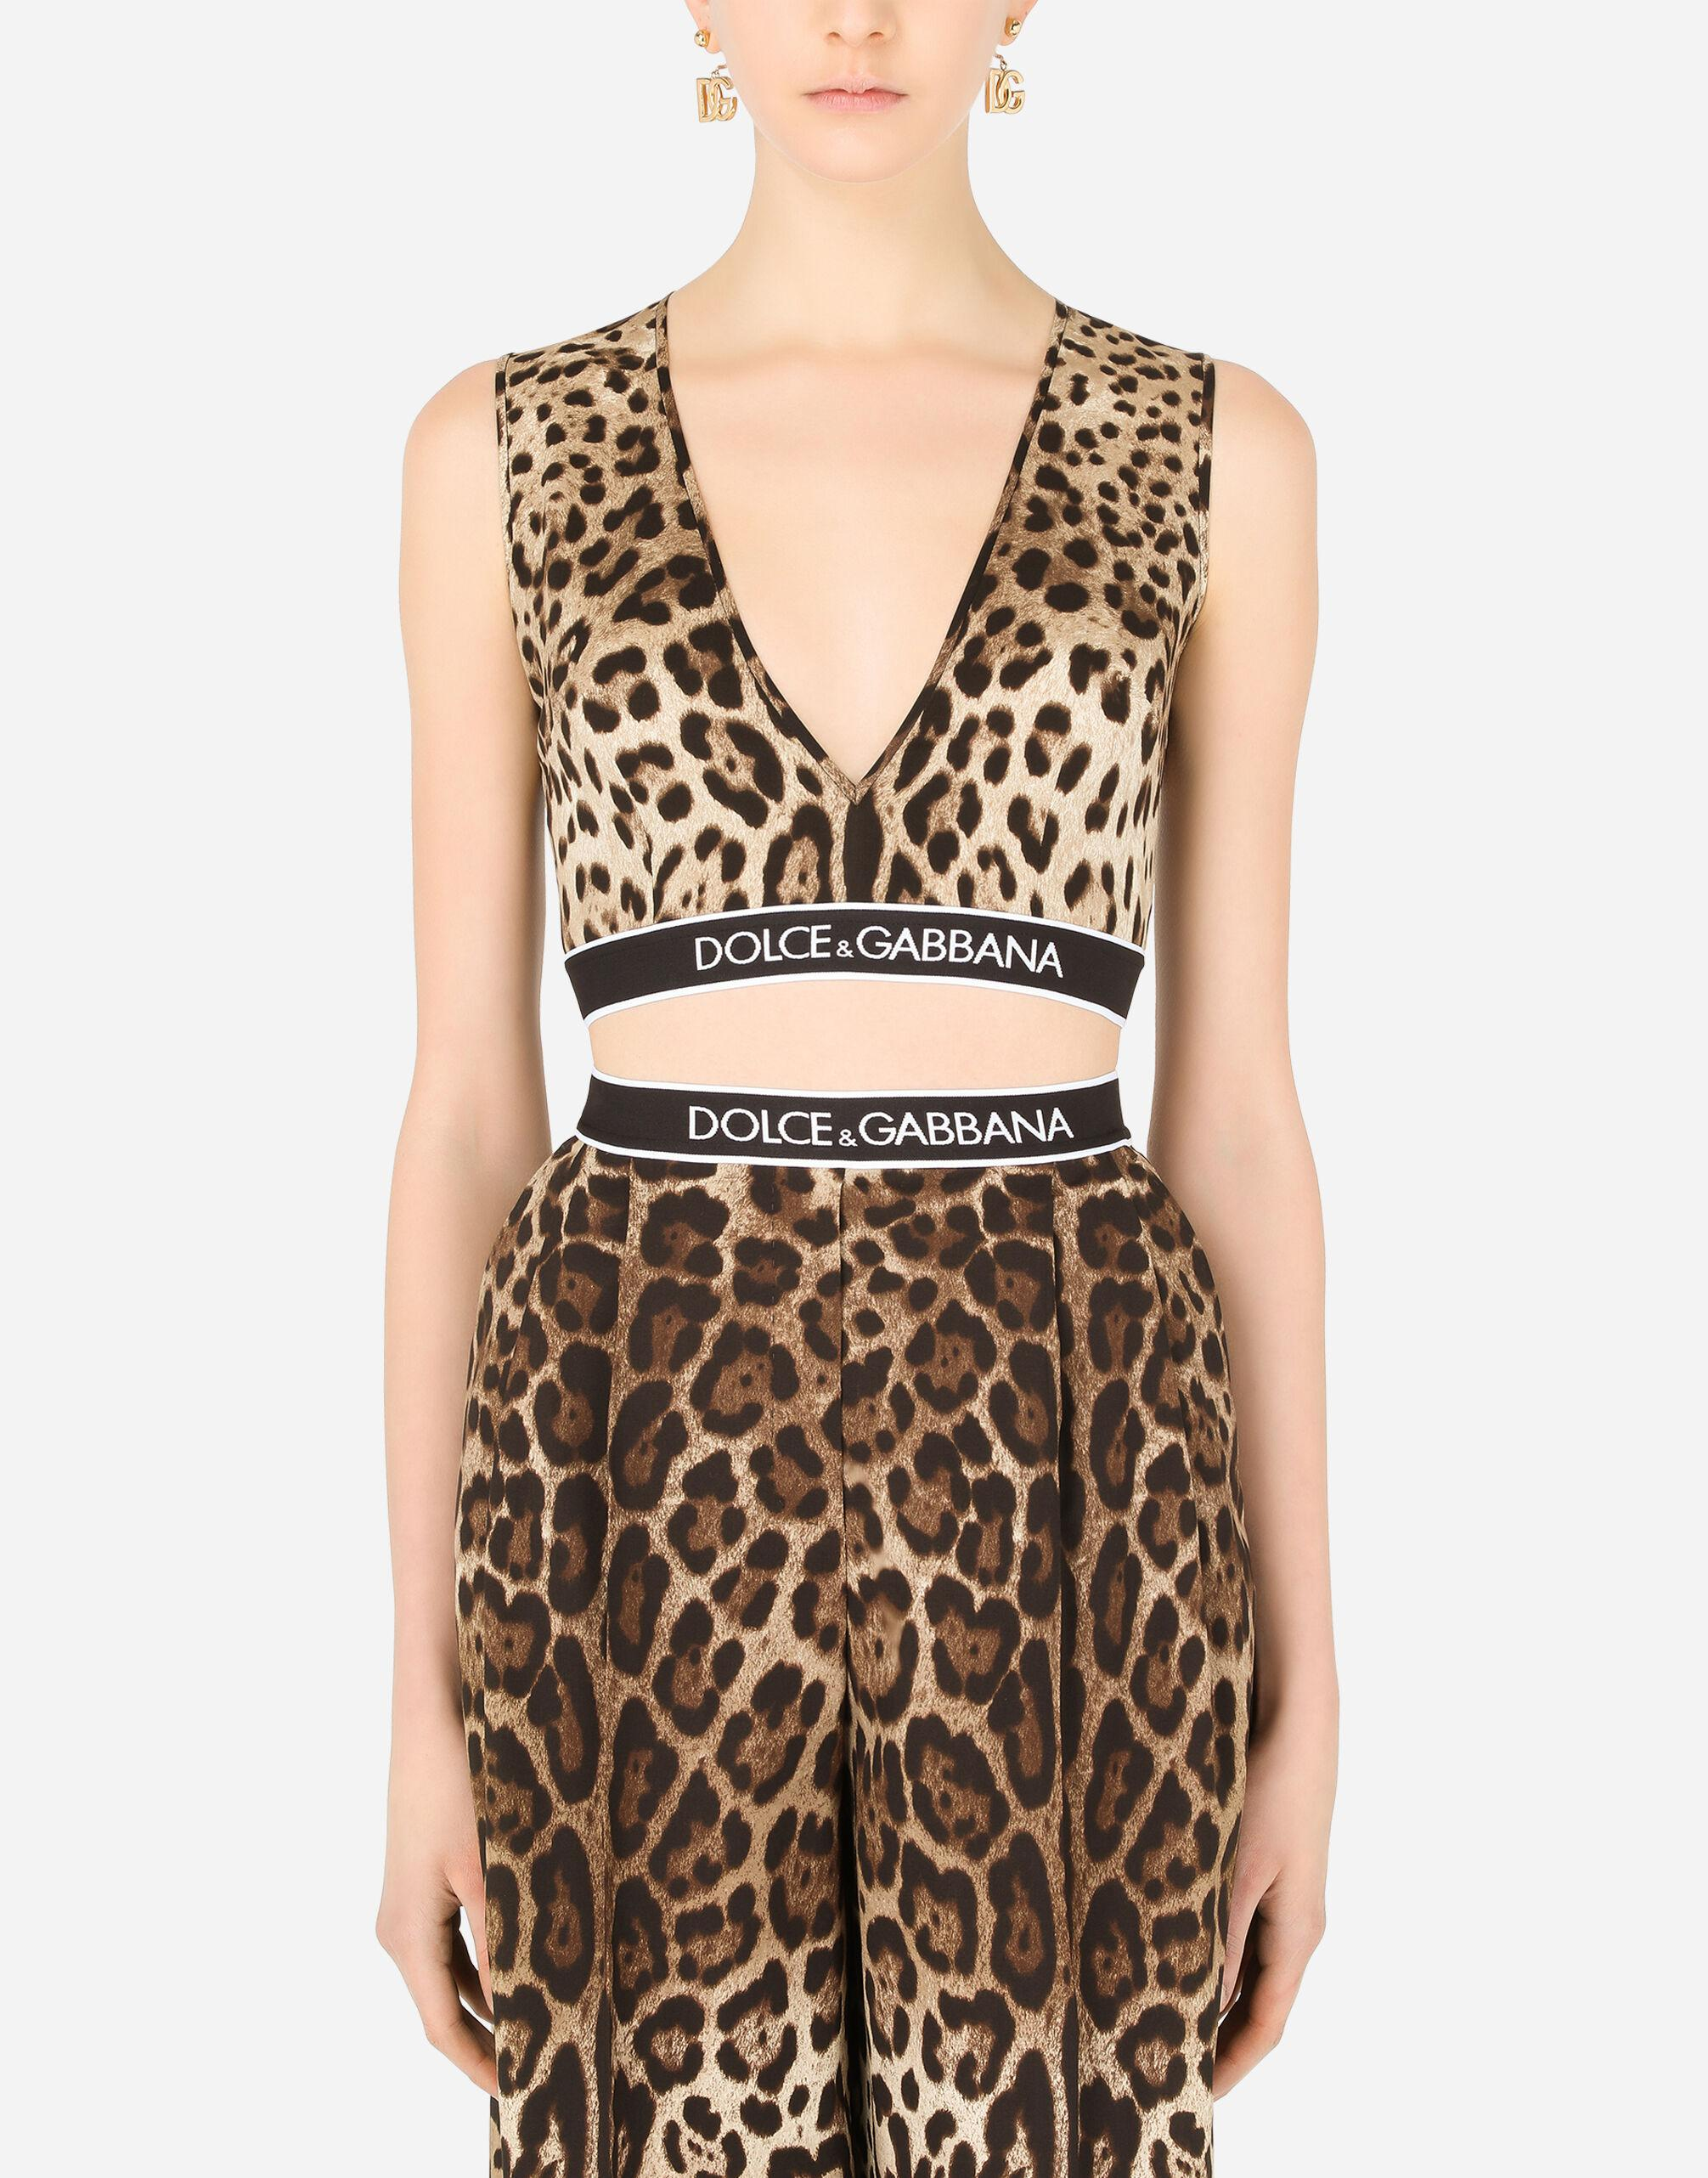 Leopard-print charmeuse top with branded elastic